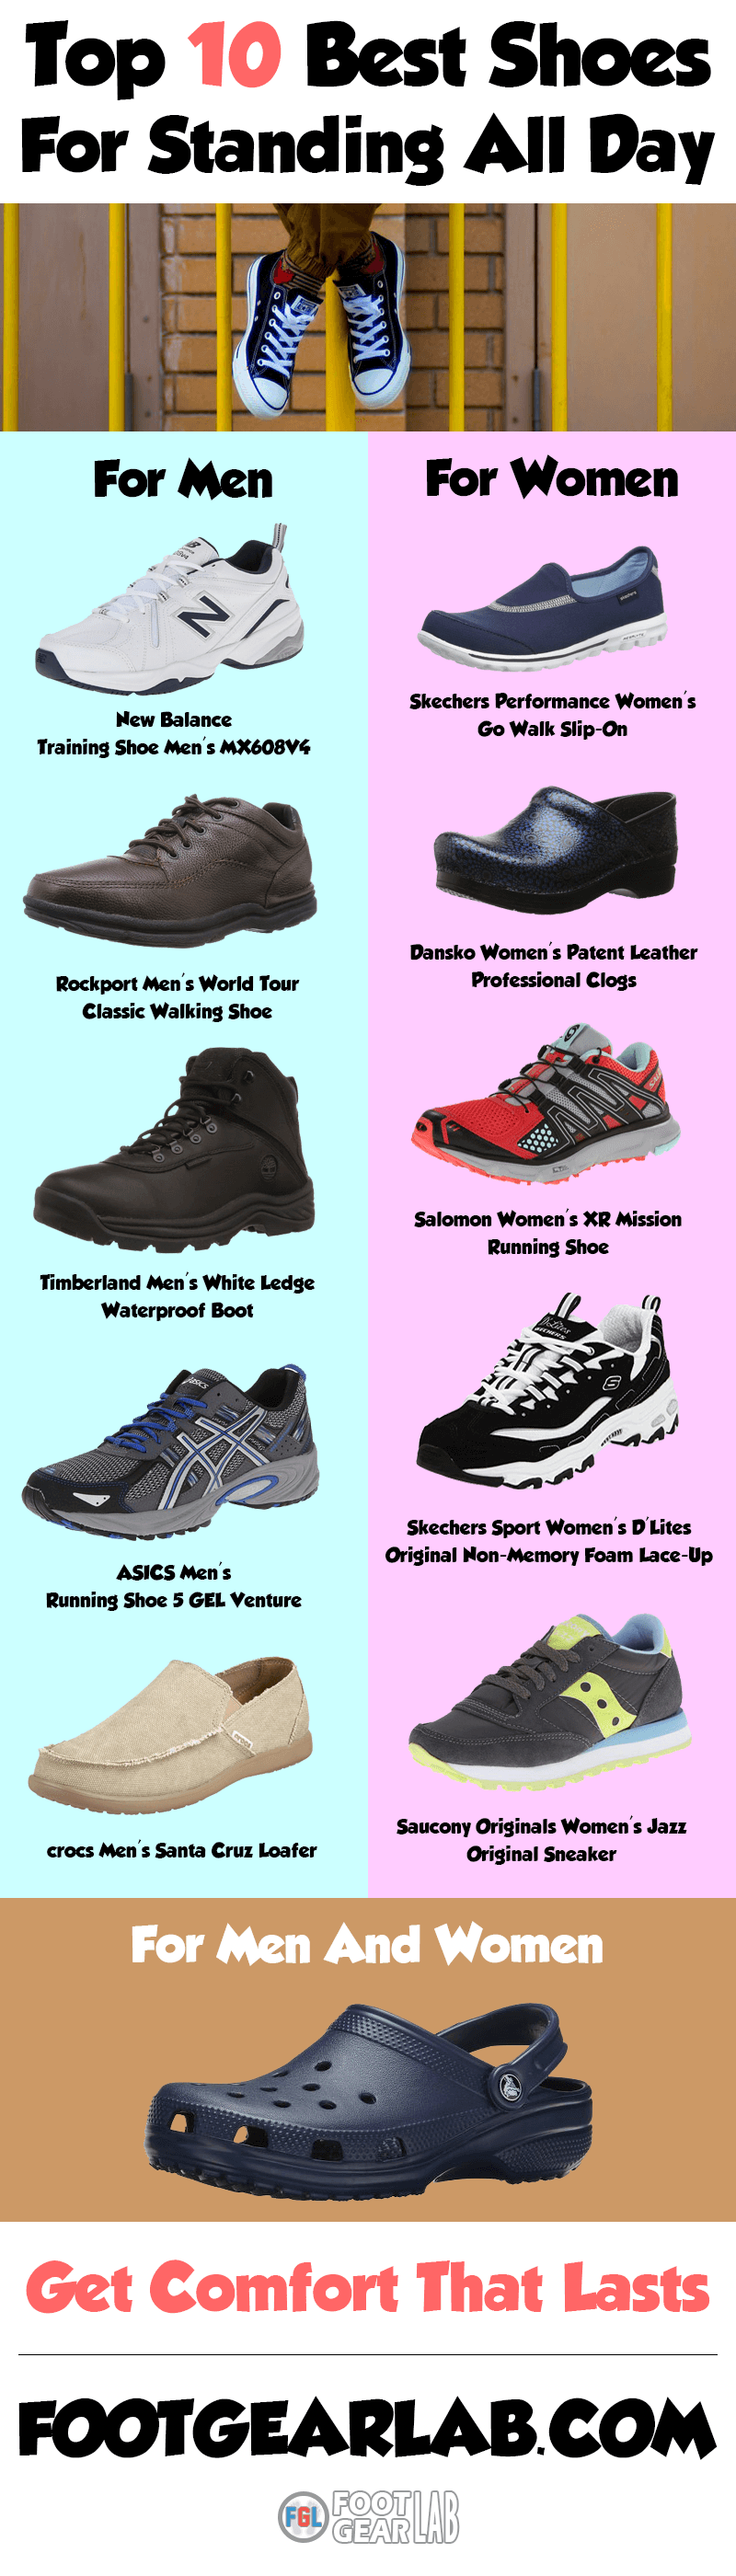 pro bk shoe view industries bike black tough sneakers kicks chrome kursk standing comfortable in comforter for small product fw